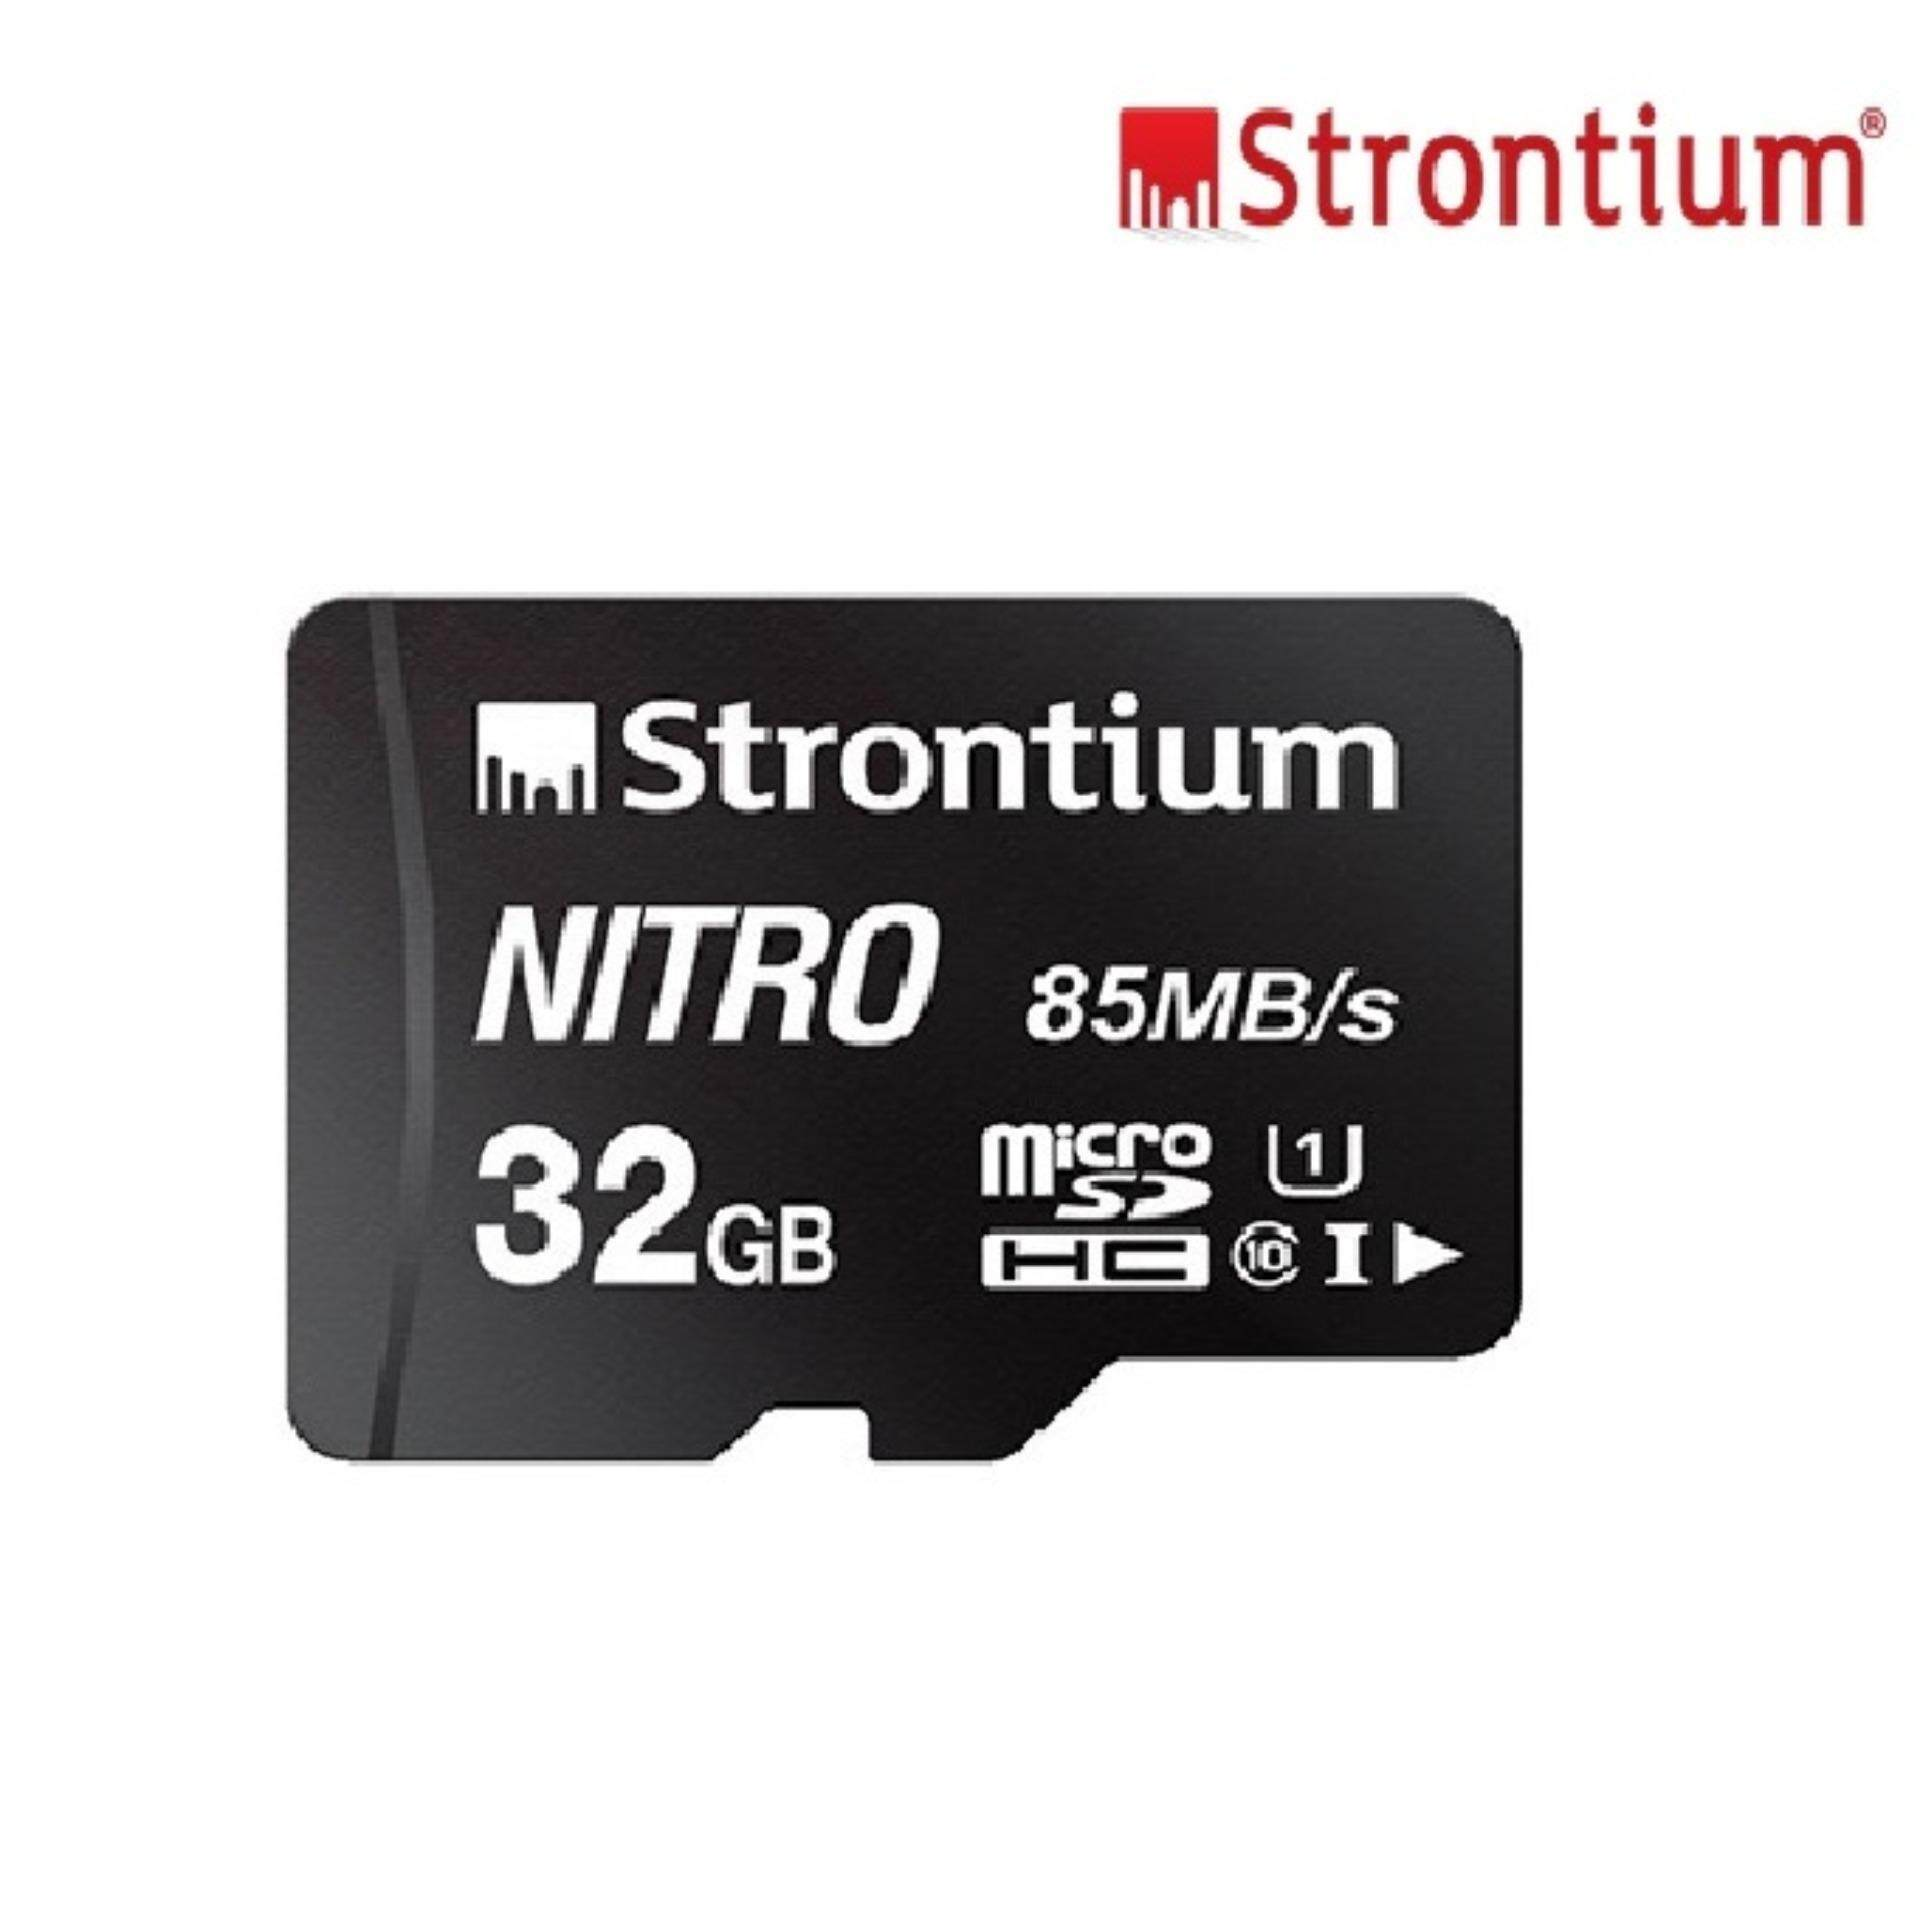 32gb Strontium Nitron 85mb/s Original Memory Card Class 10 Ultra Fast Speed Transfer Mirco Sdhc Sd Card By Dawell.